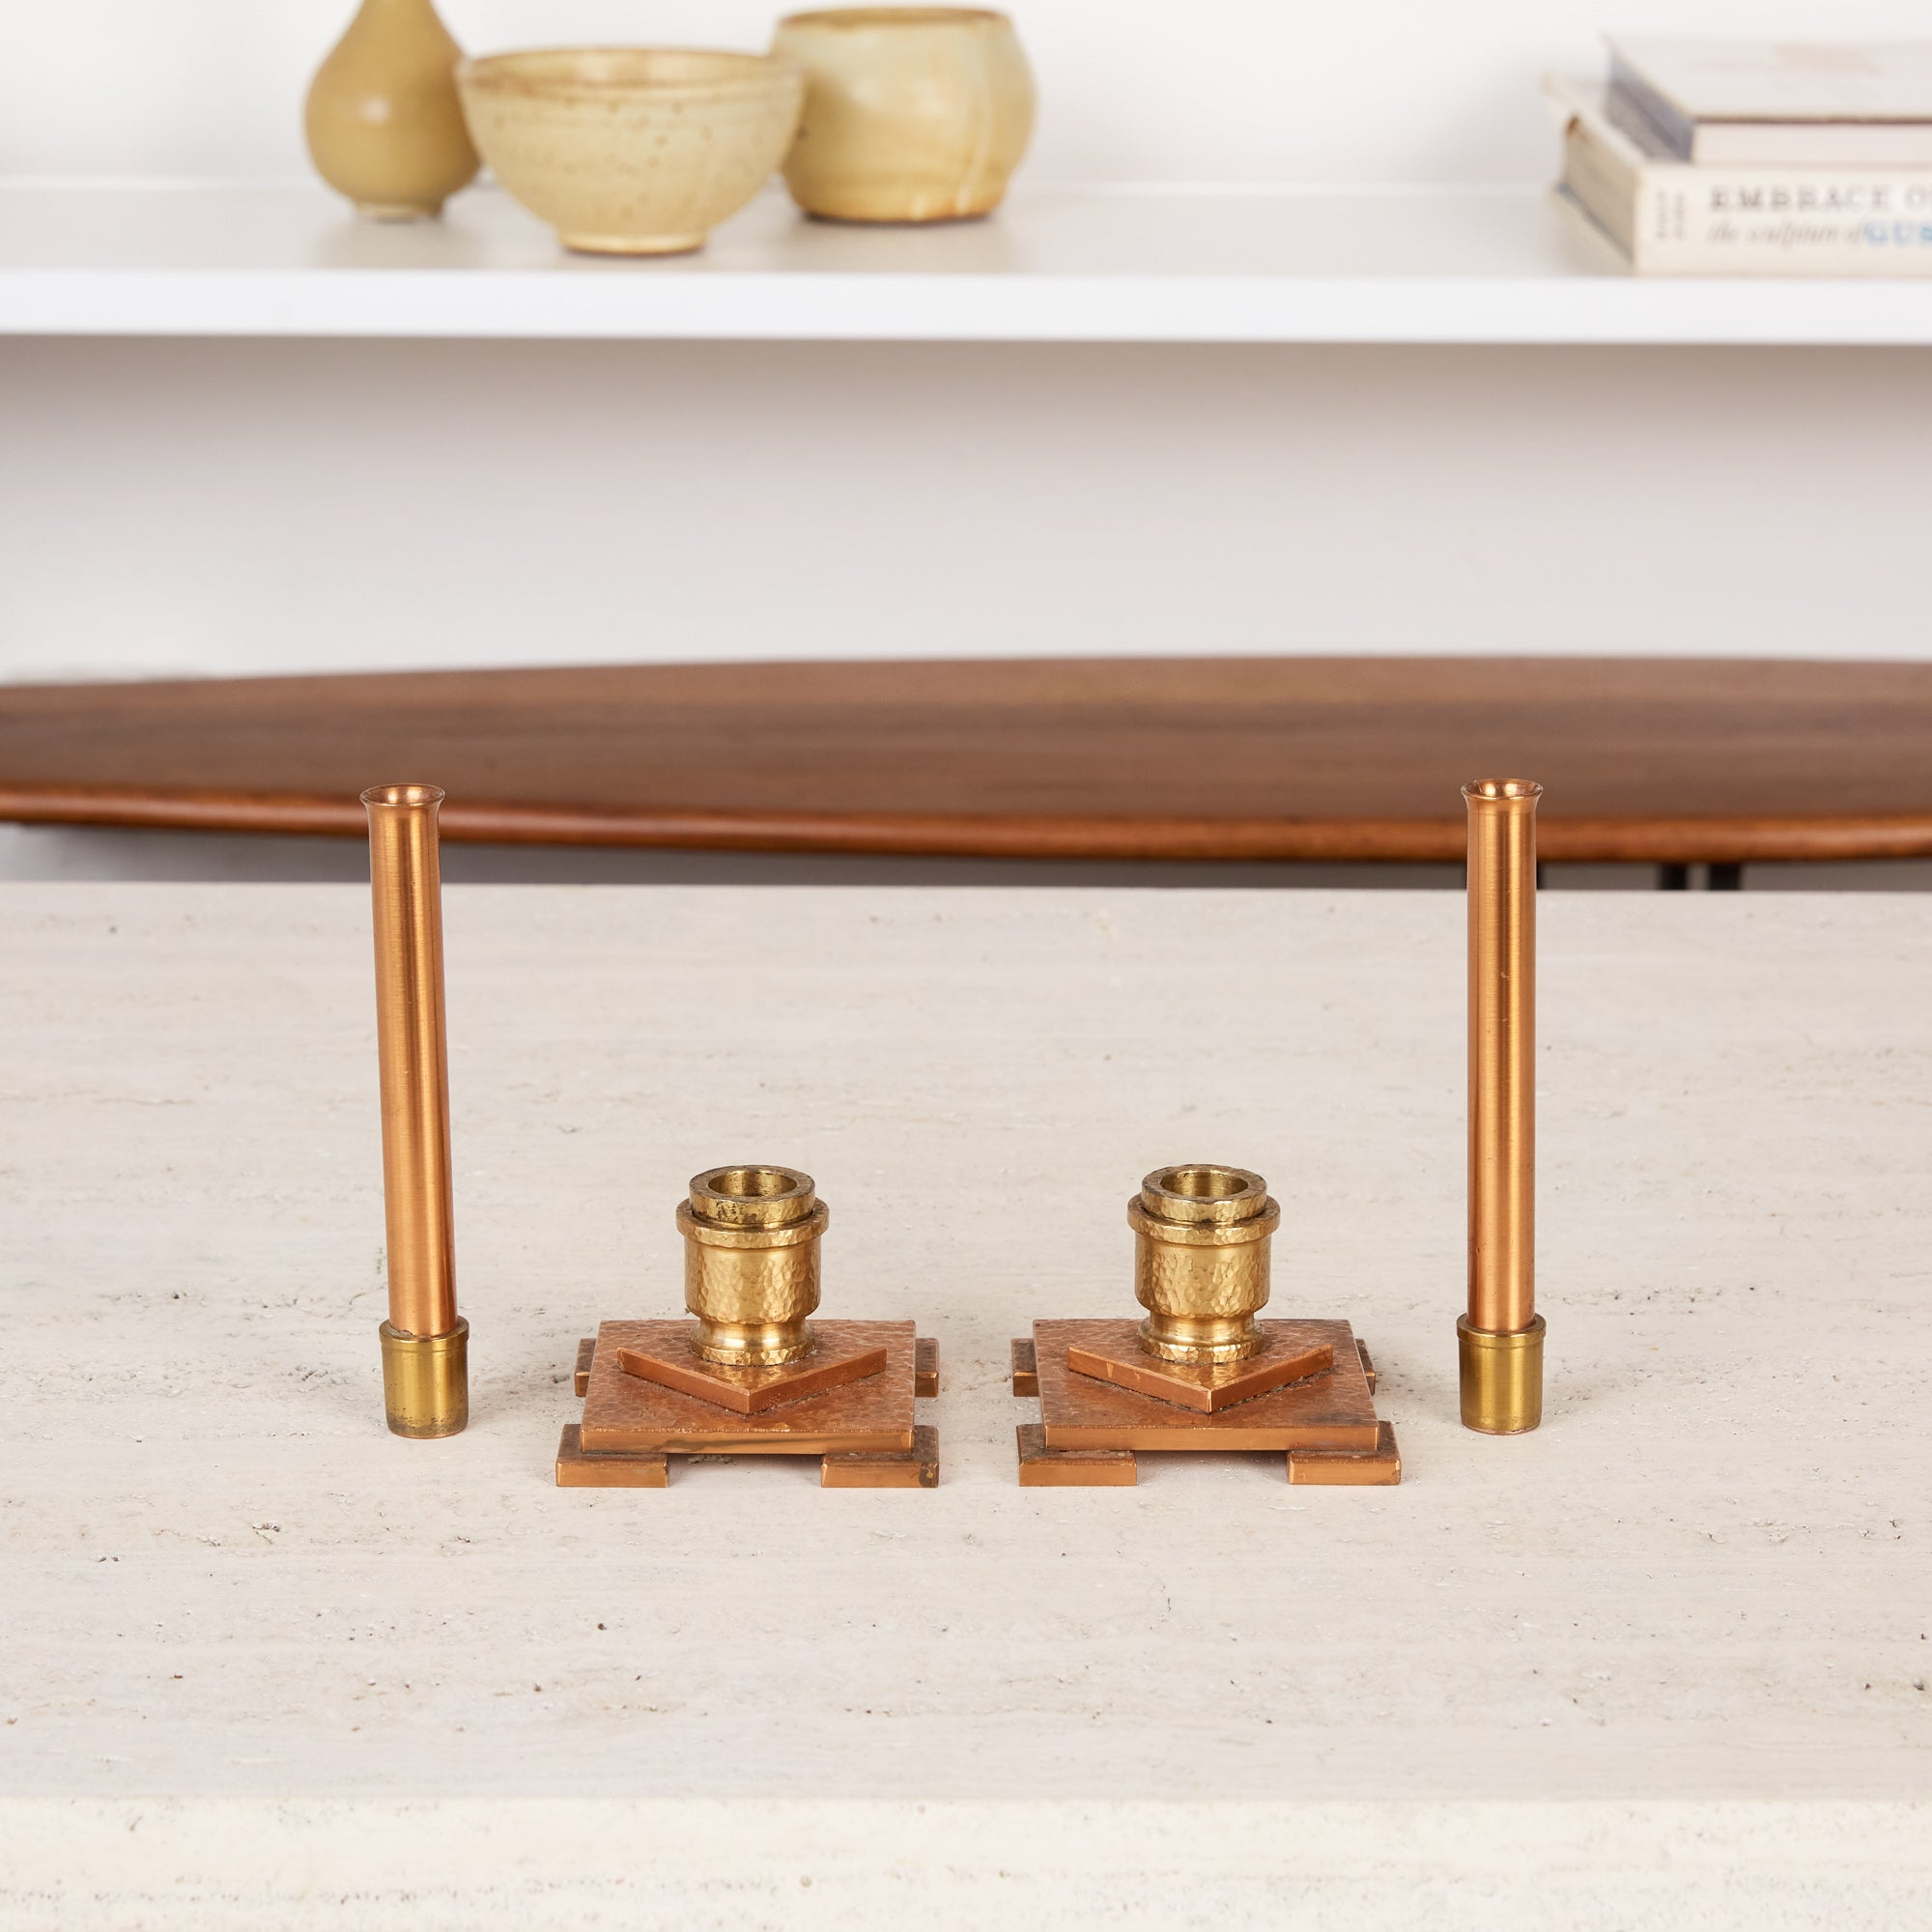 Pair of Copper and Brass Convertible Candlesticks